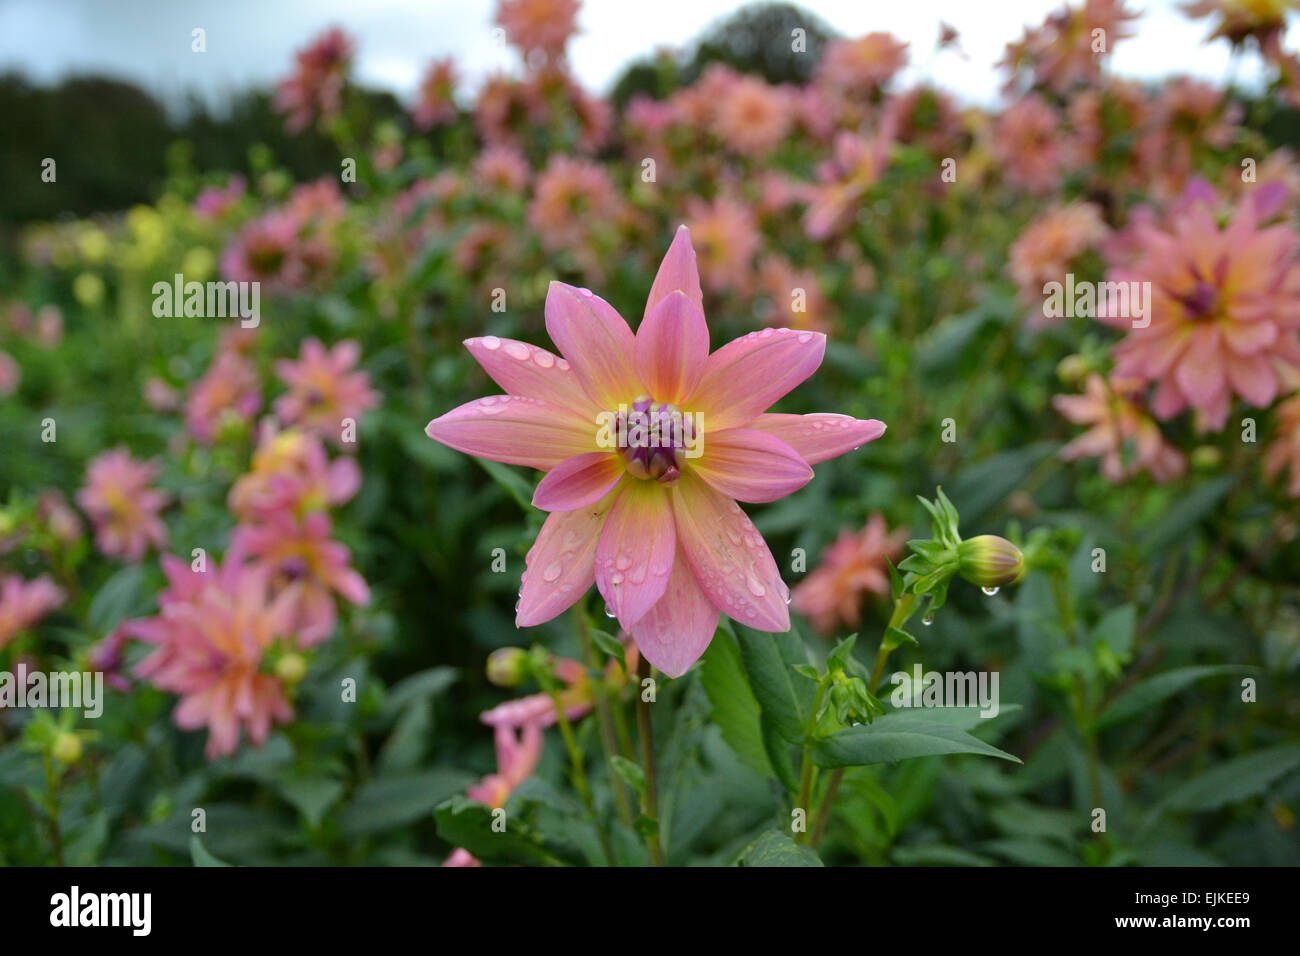 Pink Dahlia flower vareity 'yelno enchantment'  against a field of more plants - Stock Image